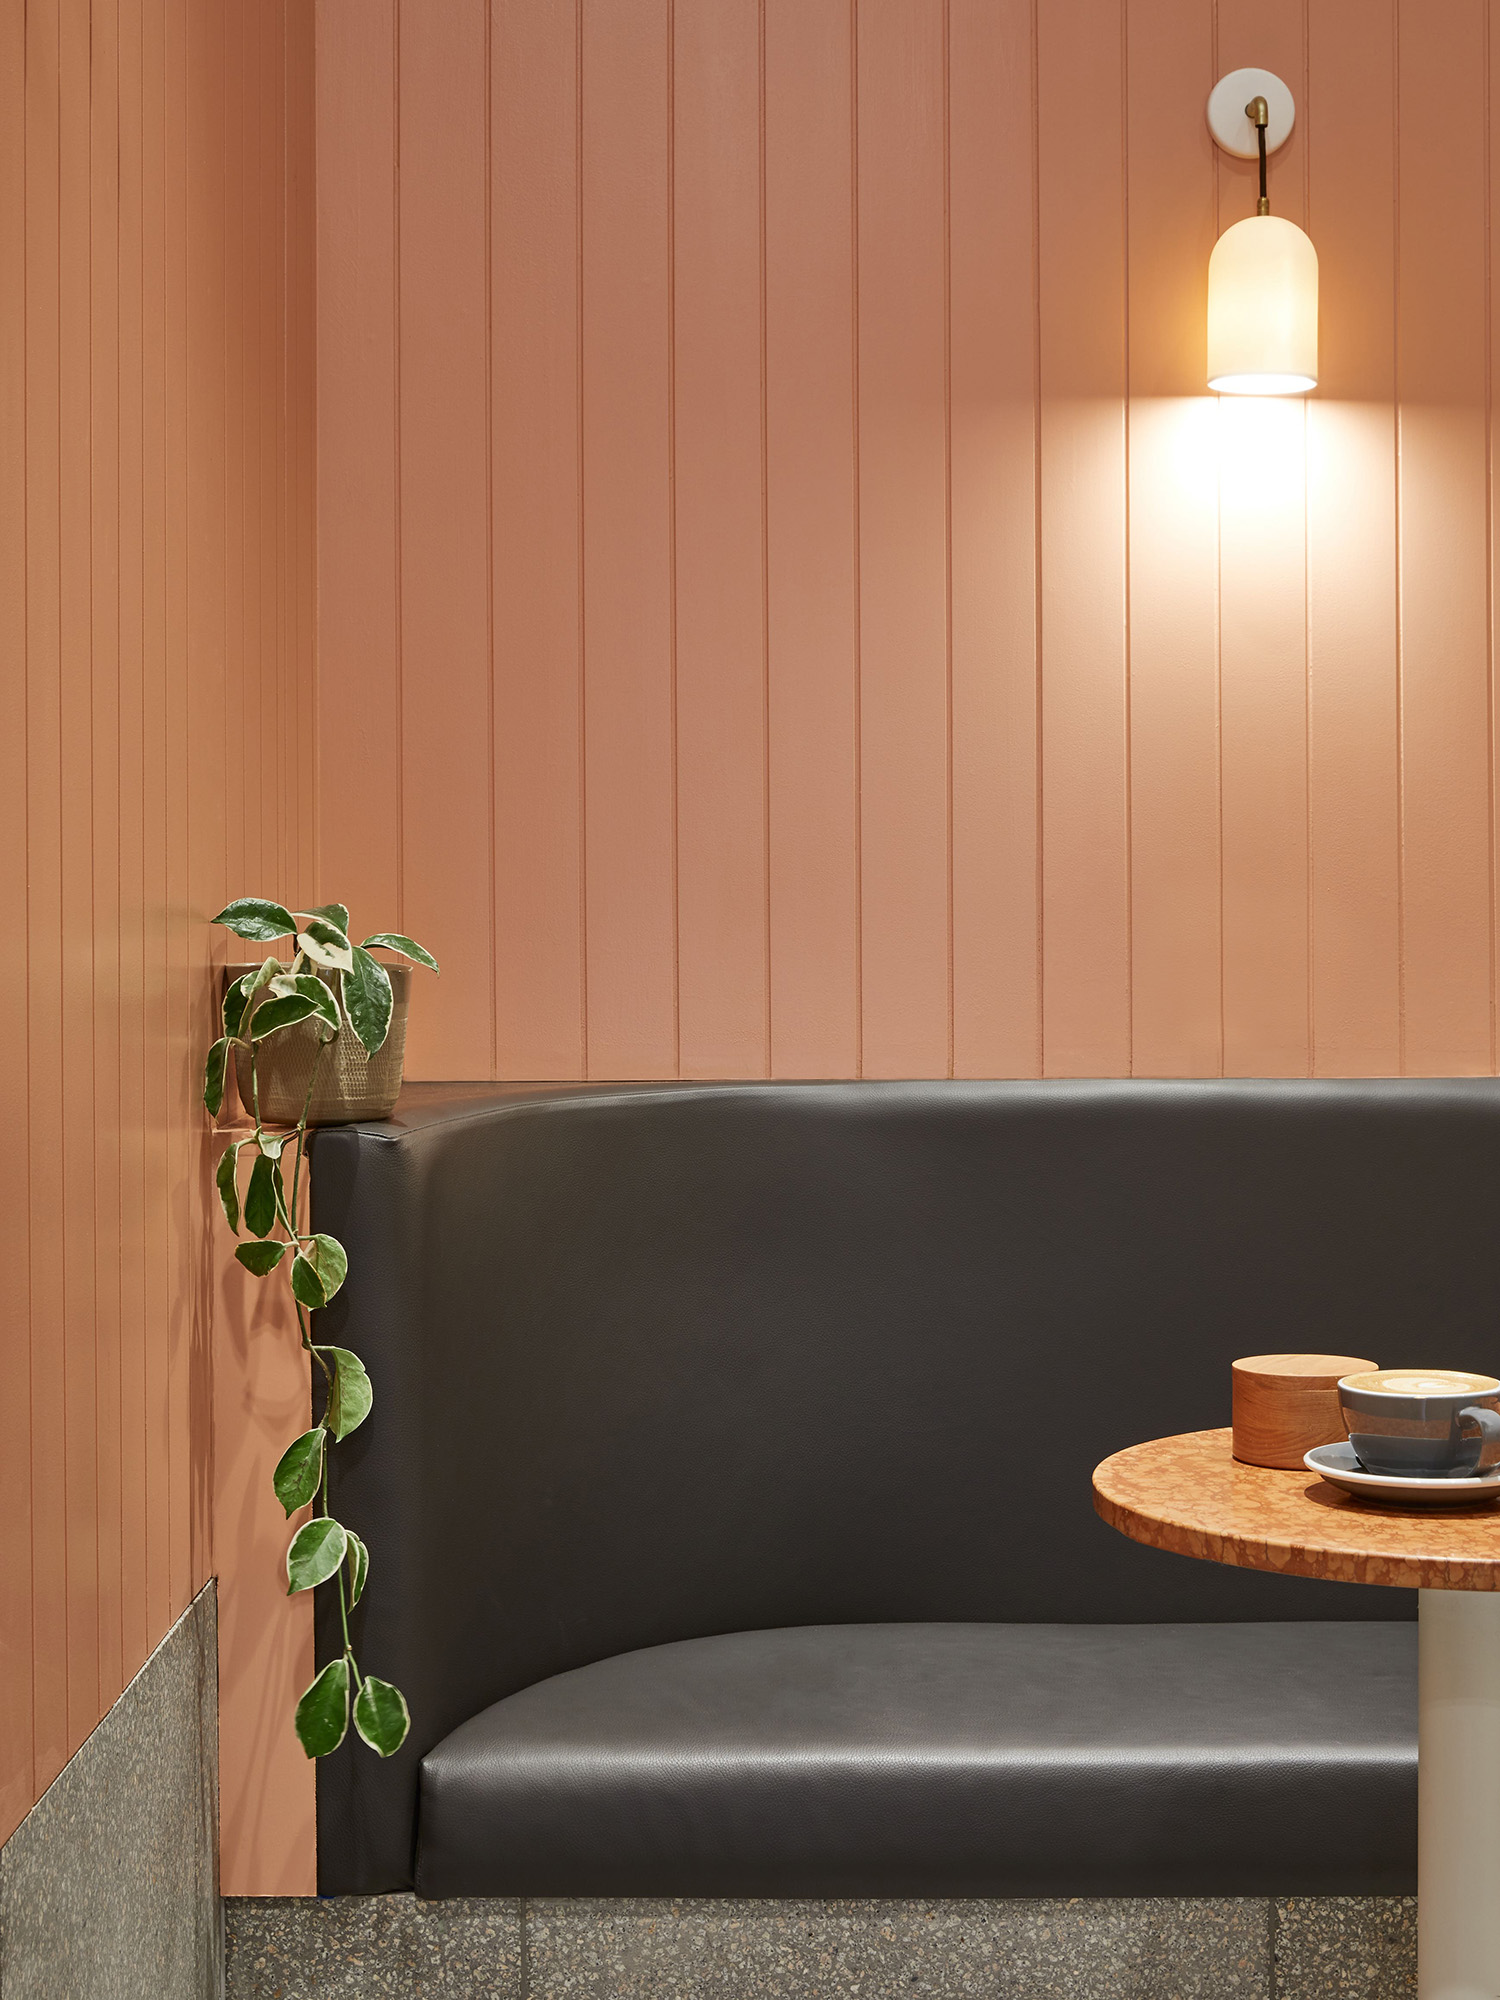 Project Title: Tulip Coffee by CoLAB Design Studio Image Credits: Hannah Caldwell